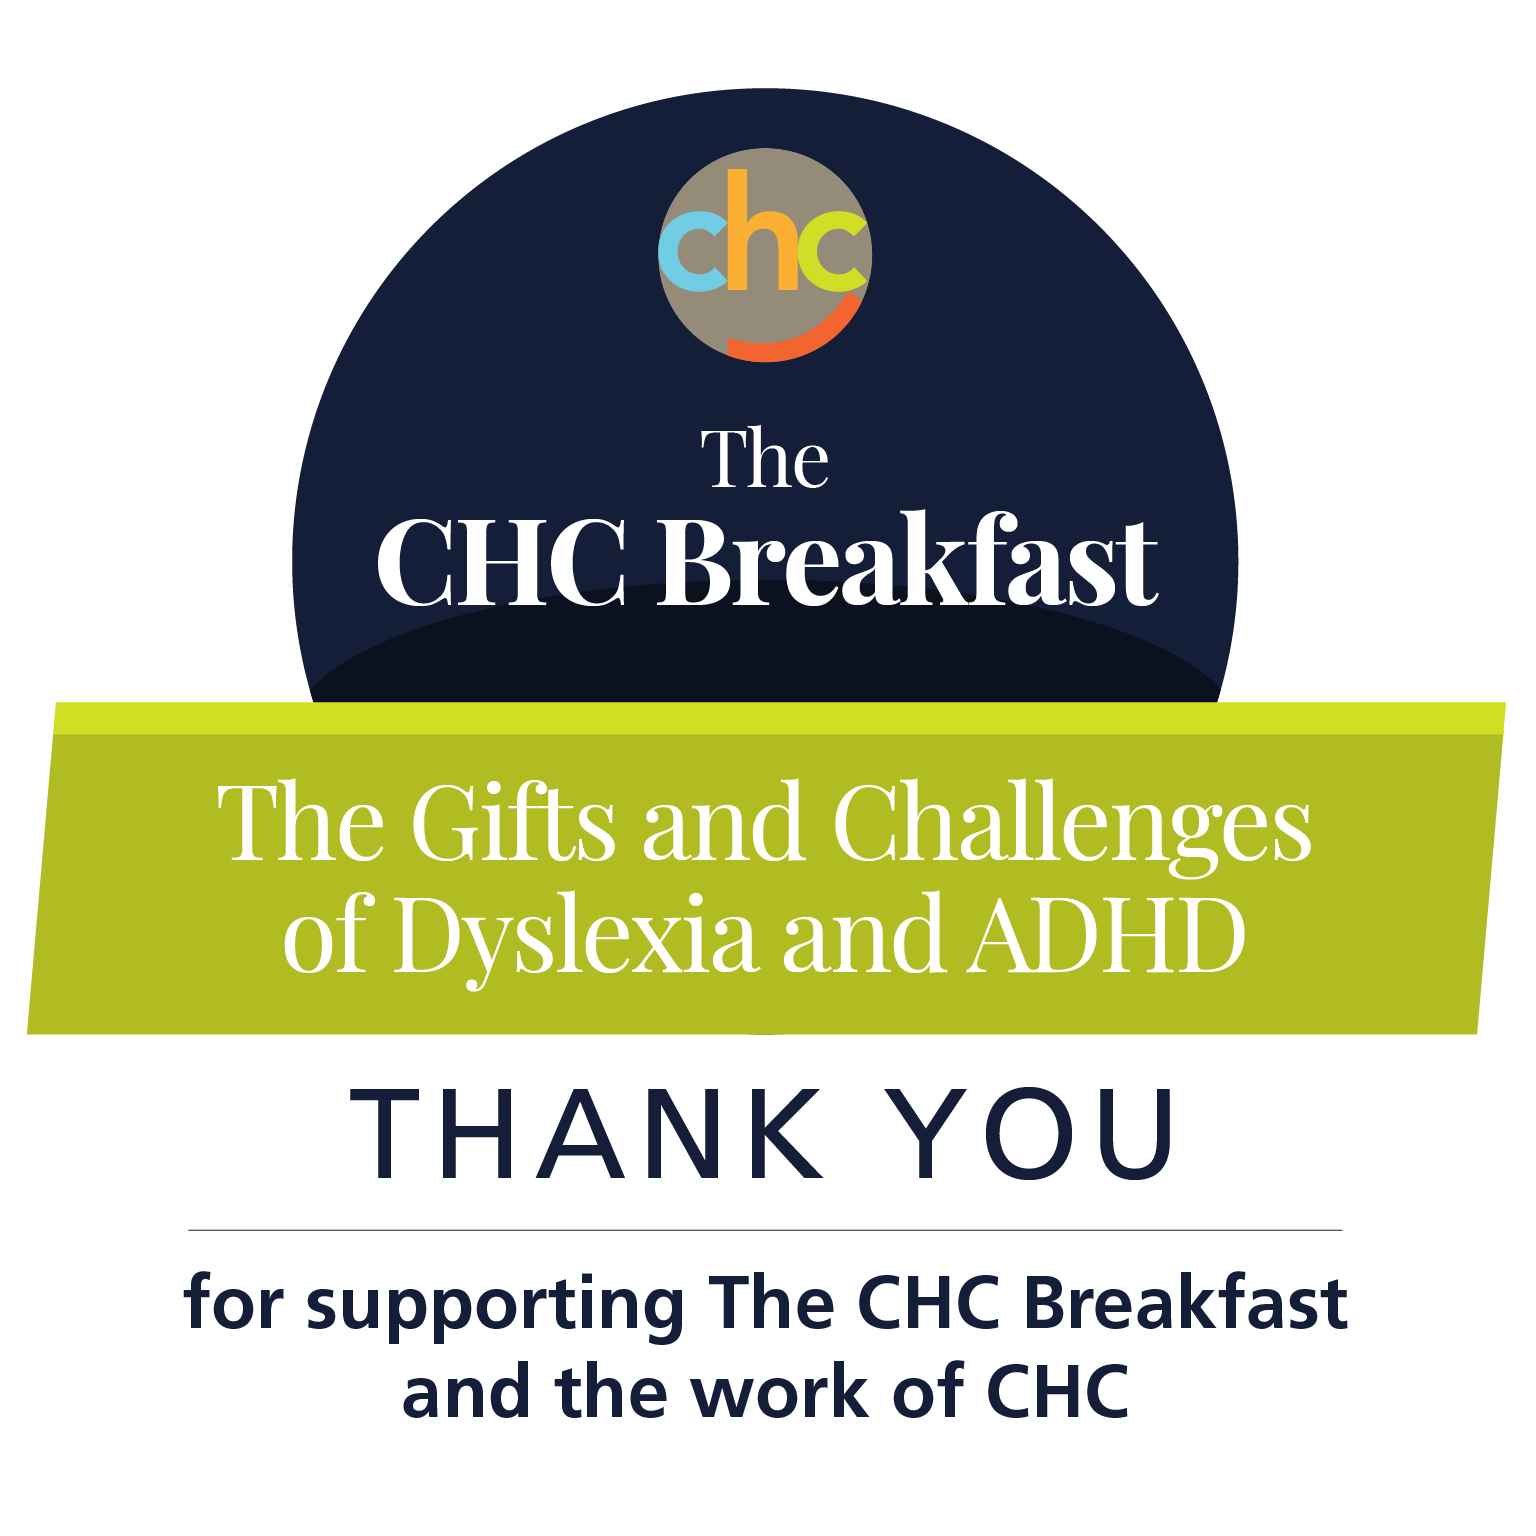 Thank you for supporting The CHC Breakfast, Thursday, March 5, 2020